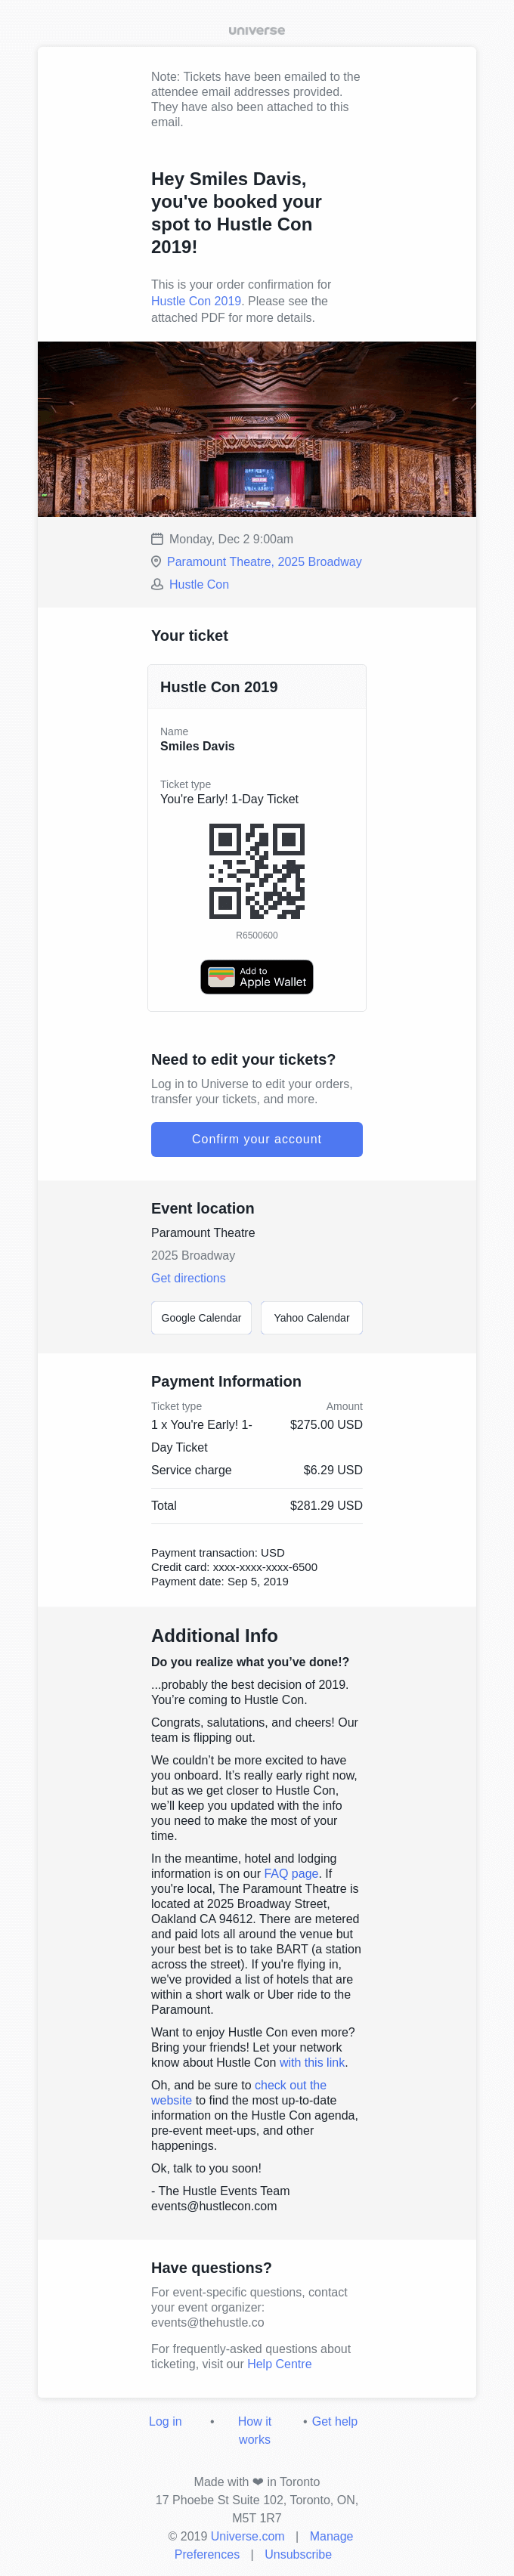 Here is your ticket to Hustle Con 2019